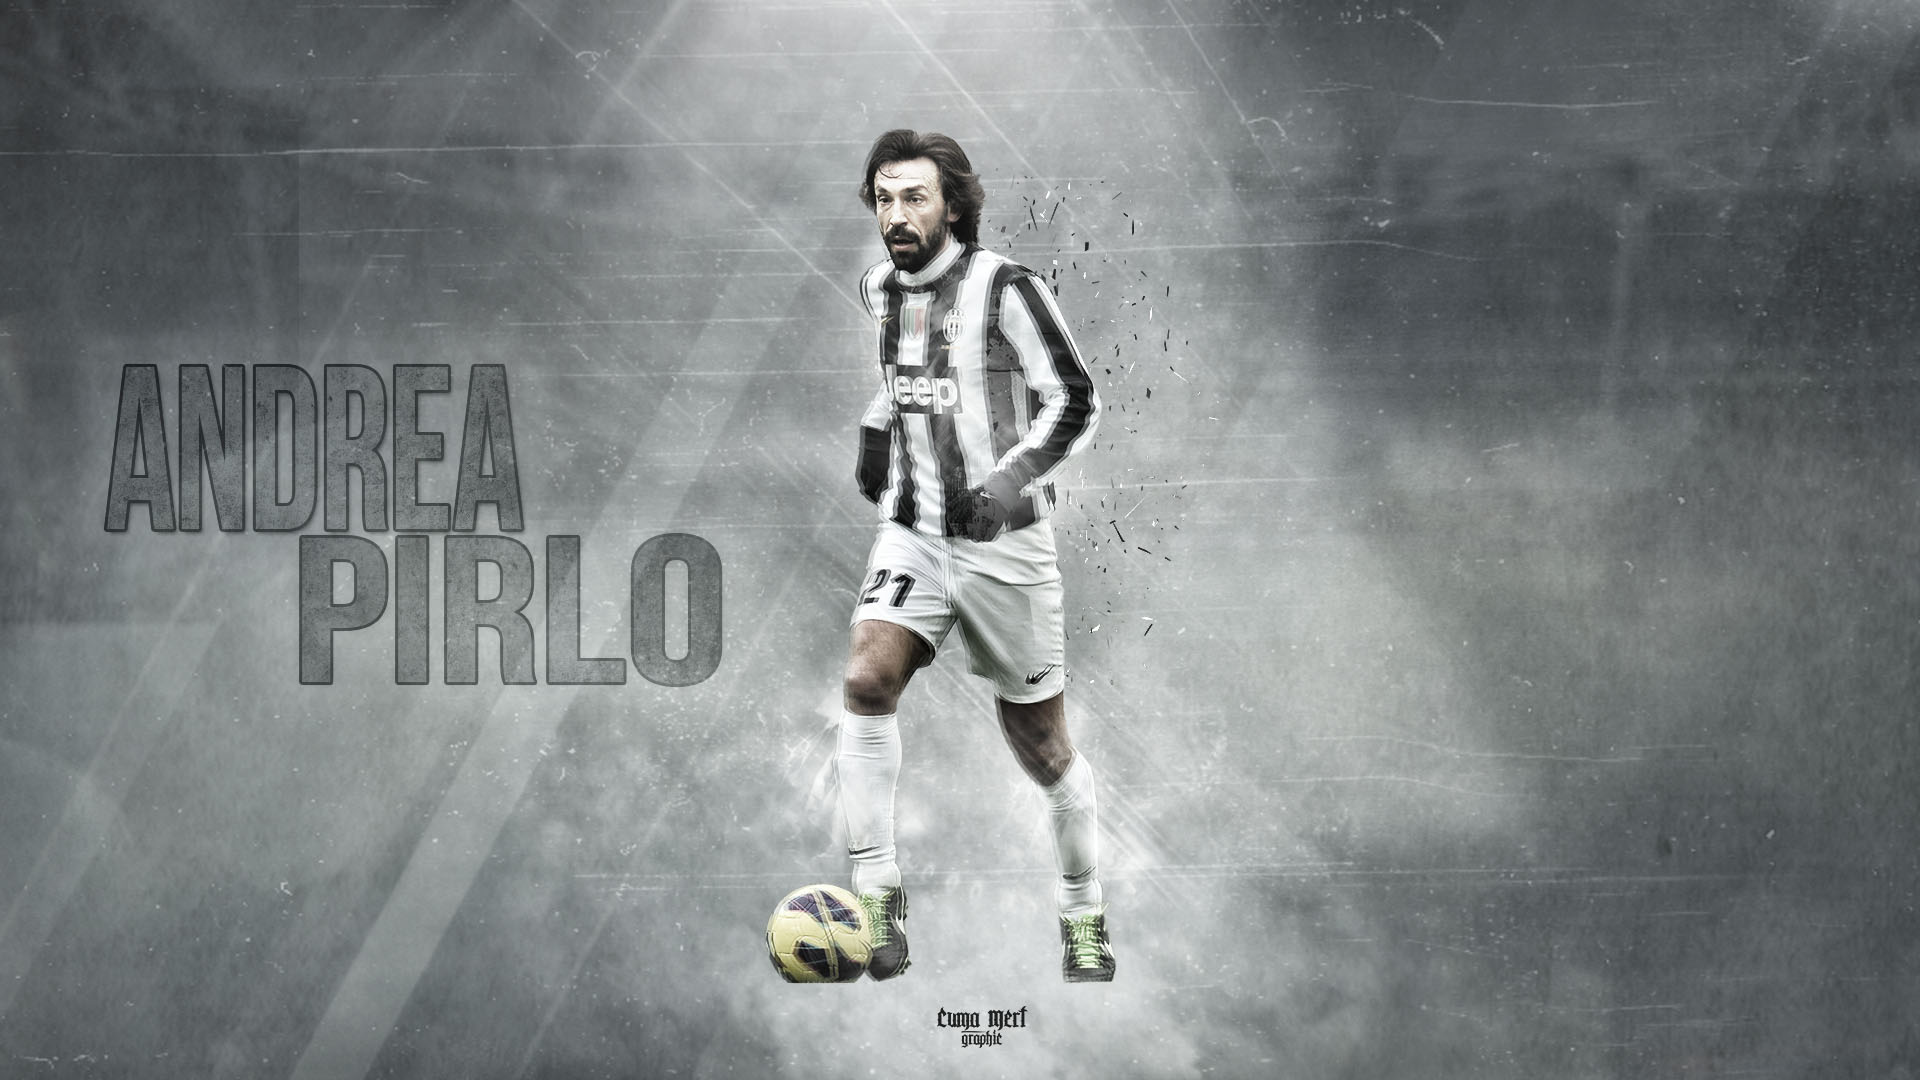 1920x1080 - Andrea Pirlo Wallpapers 7